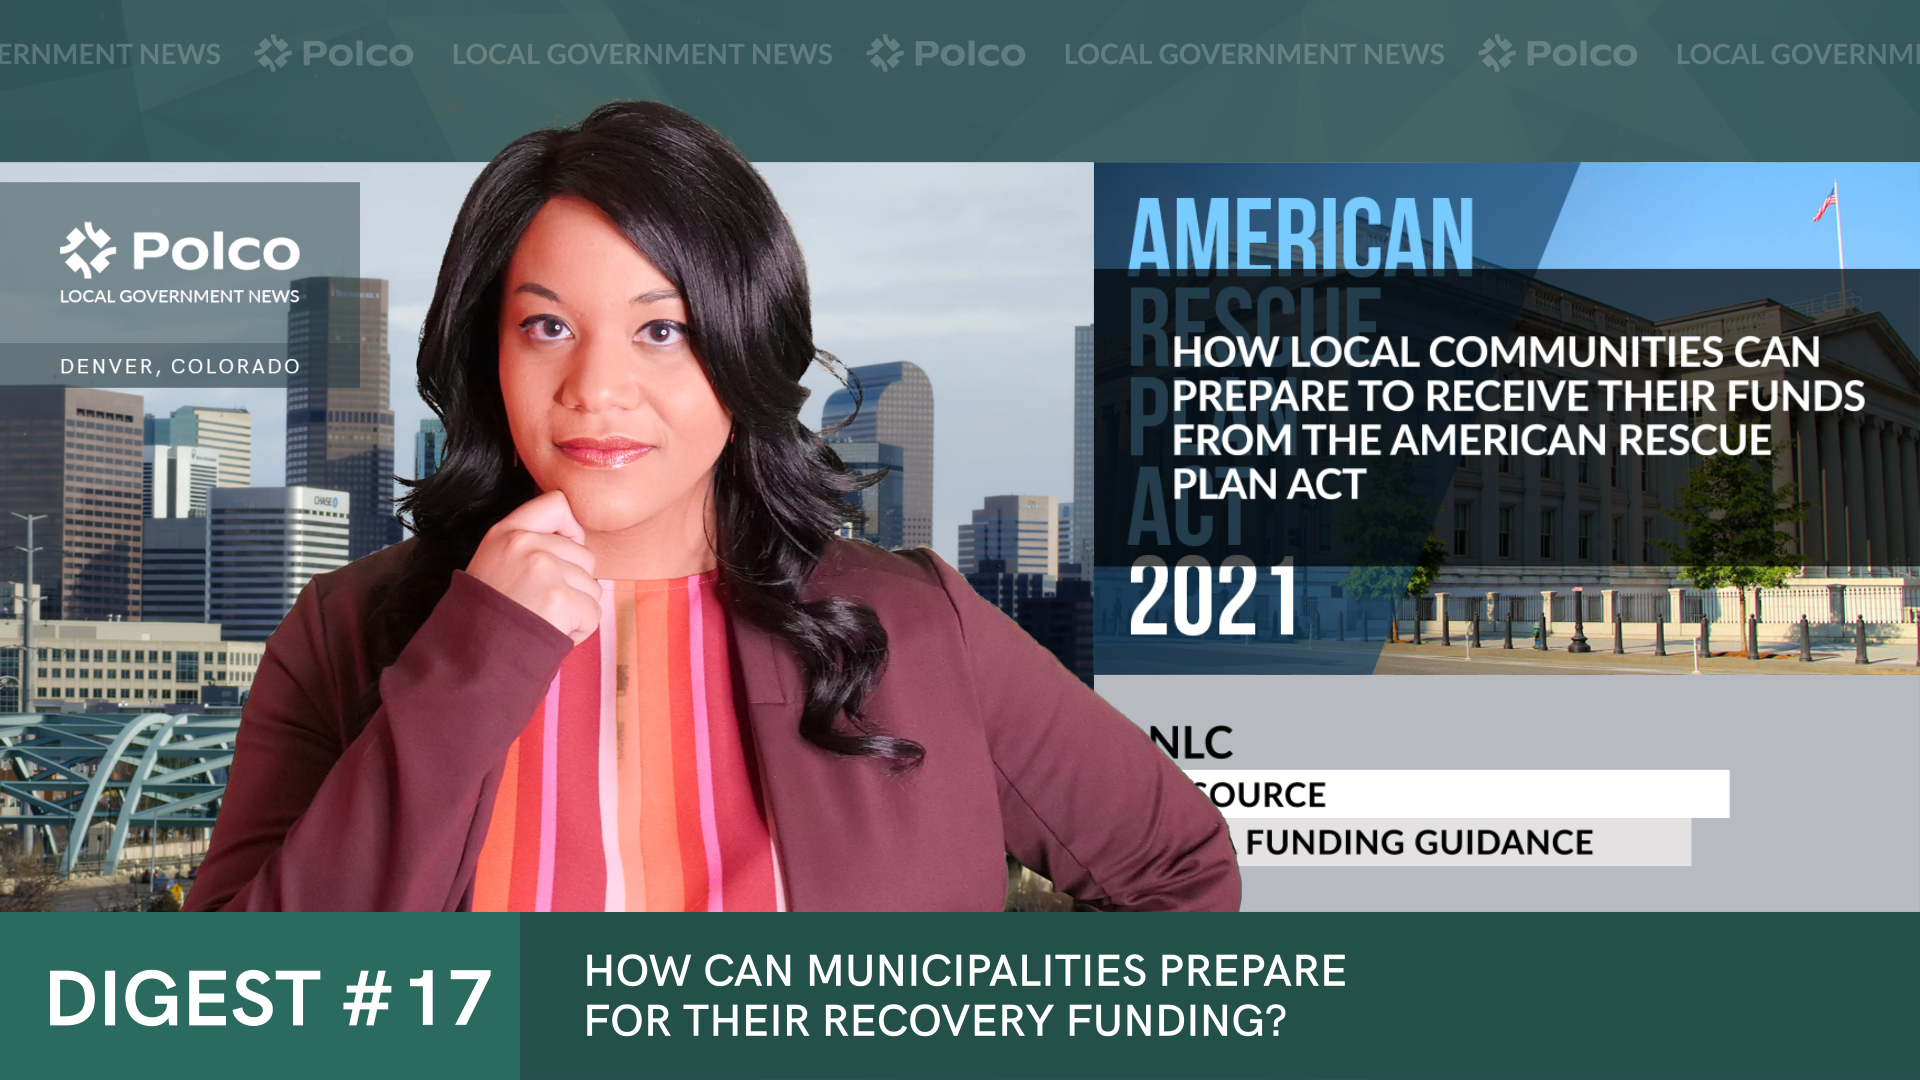 How Can Municipalities Prepare For Their Recovery Funding?